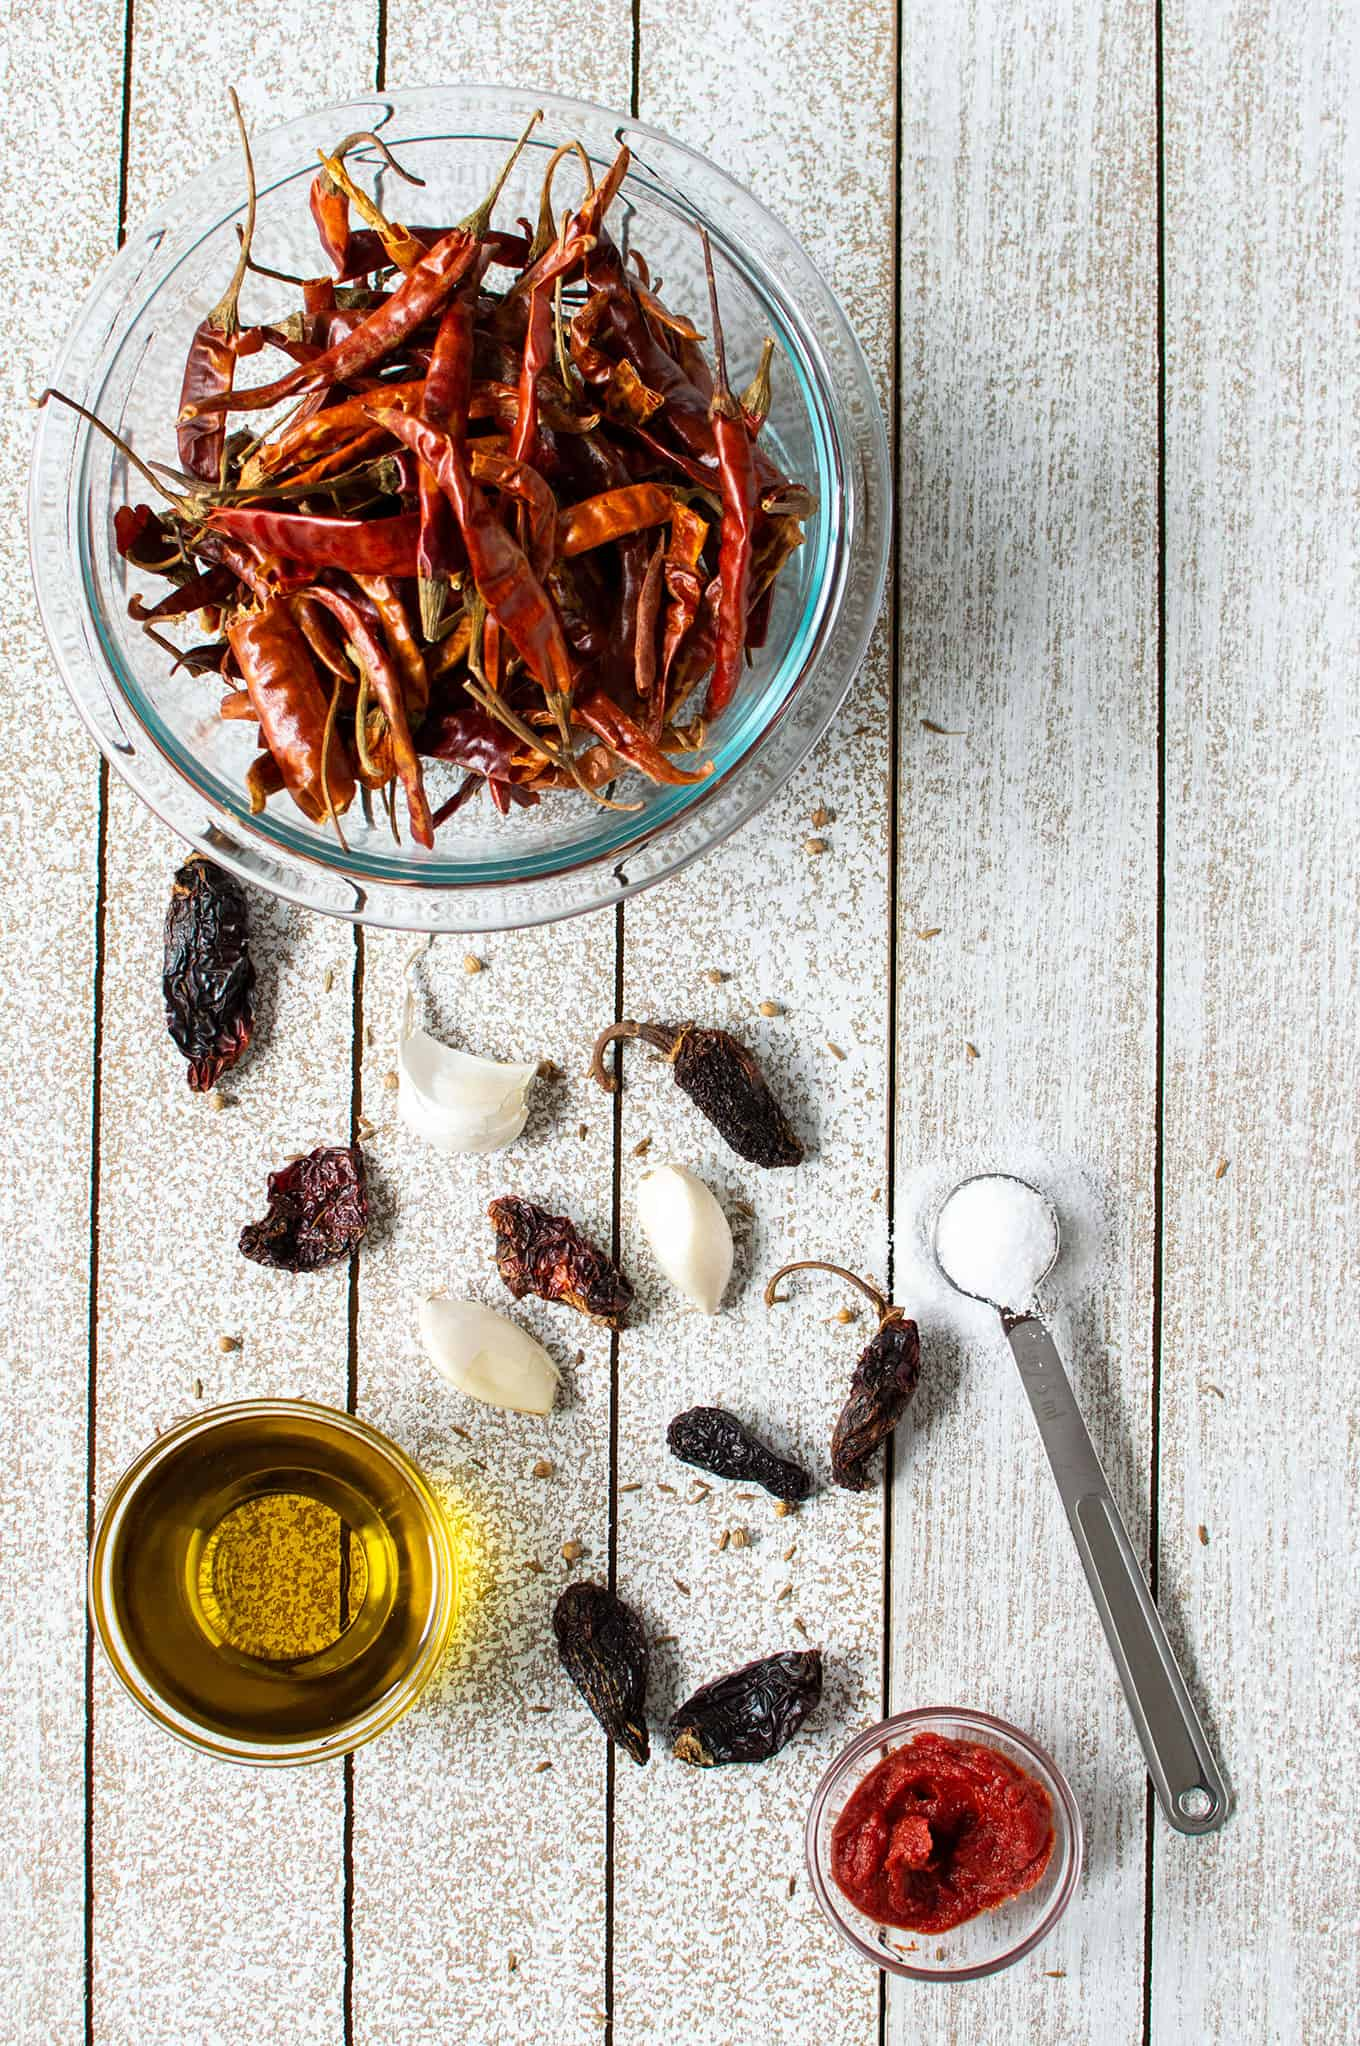 Dried chiles, garlic cloves, salt, and olive oil on a table.